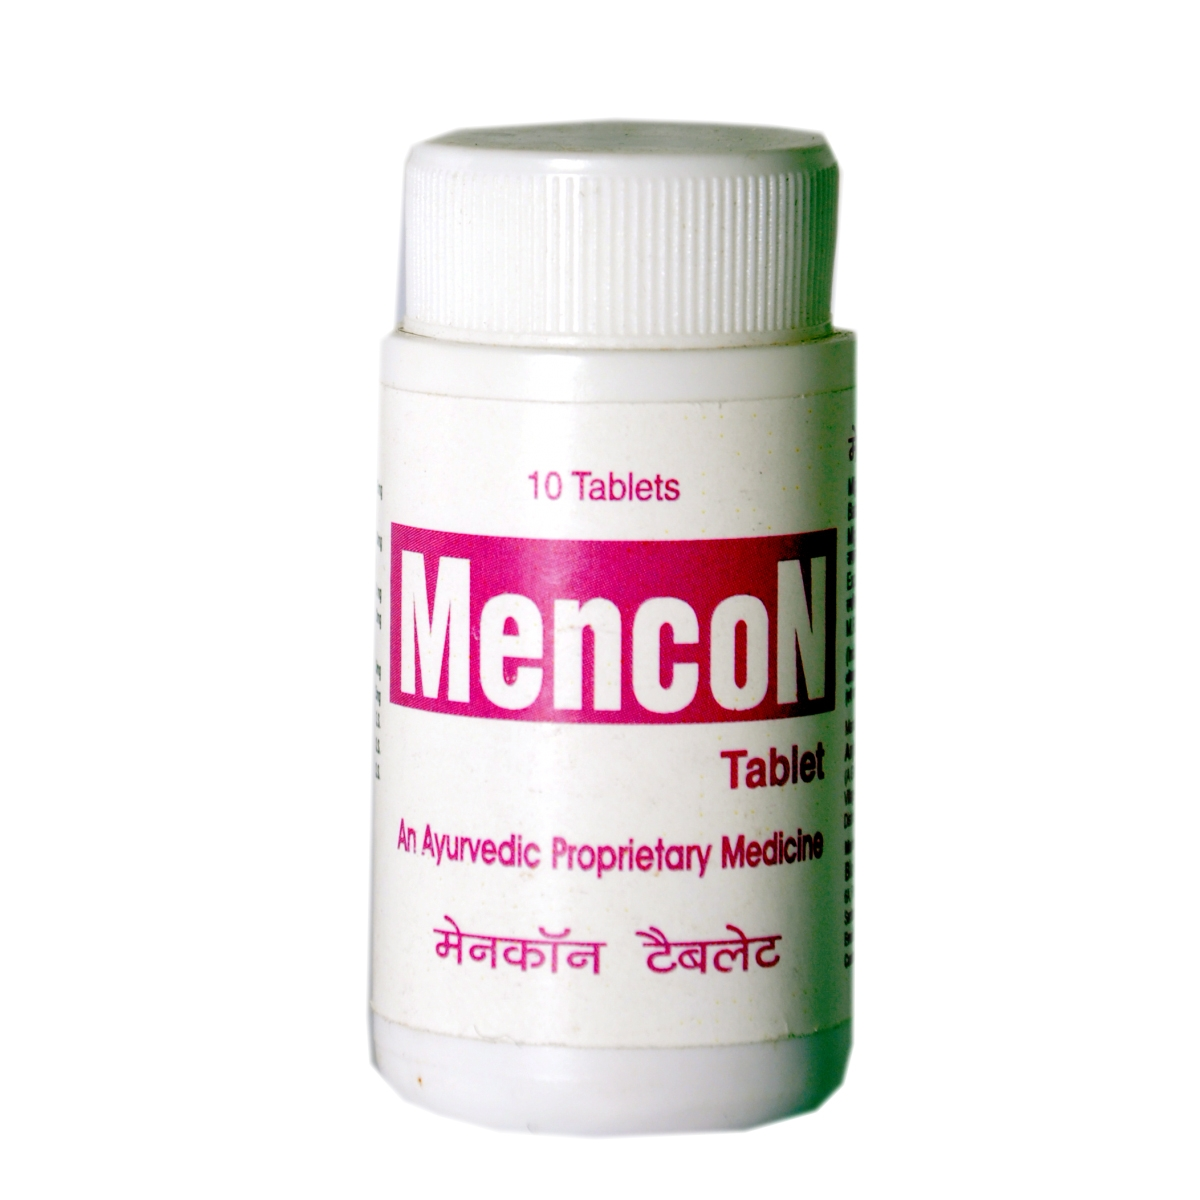 Mencon Tablet In Gandhinagar